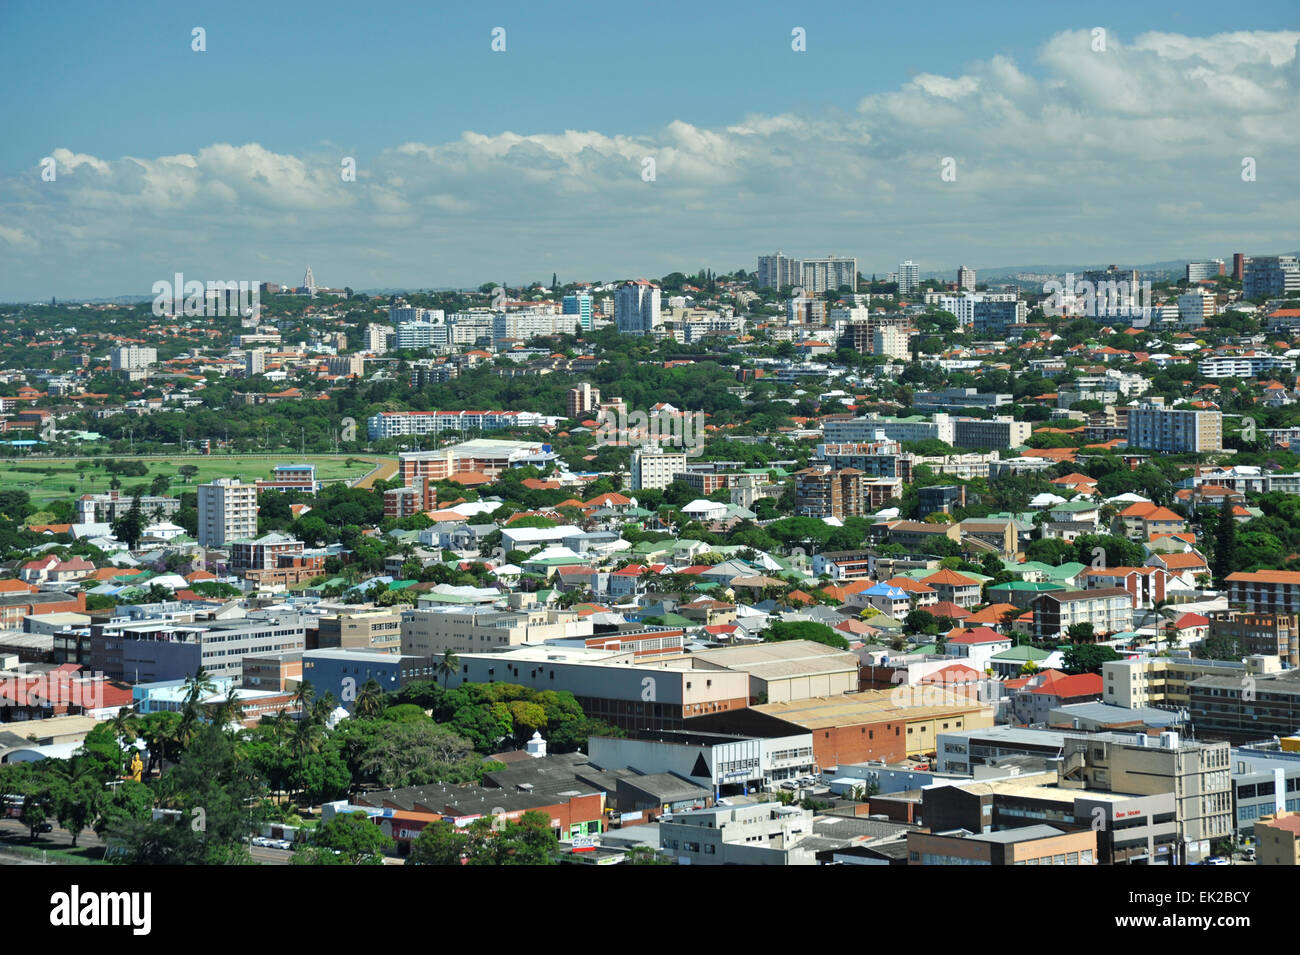 High view of Durban city suburbs Morningside and Essenwood, looking west, South Africa - Stock Image